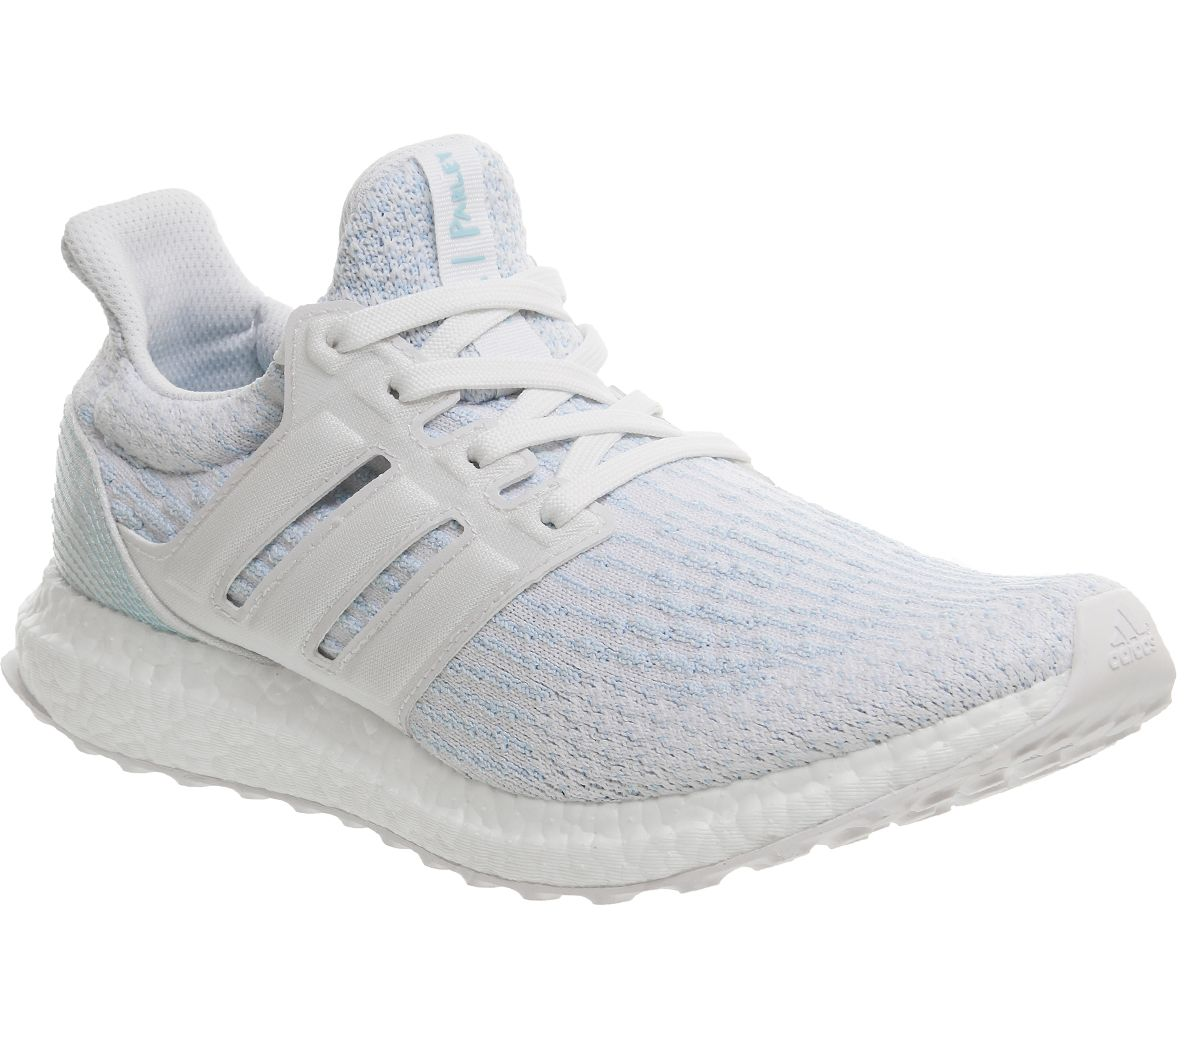 9182e43a6 adidas Ultraboost Ultra Boost Trainers White Icey Blue Parley ...